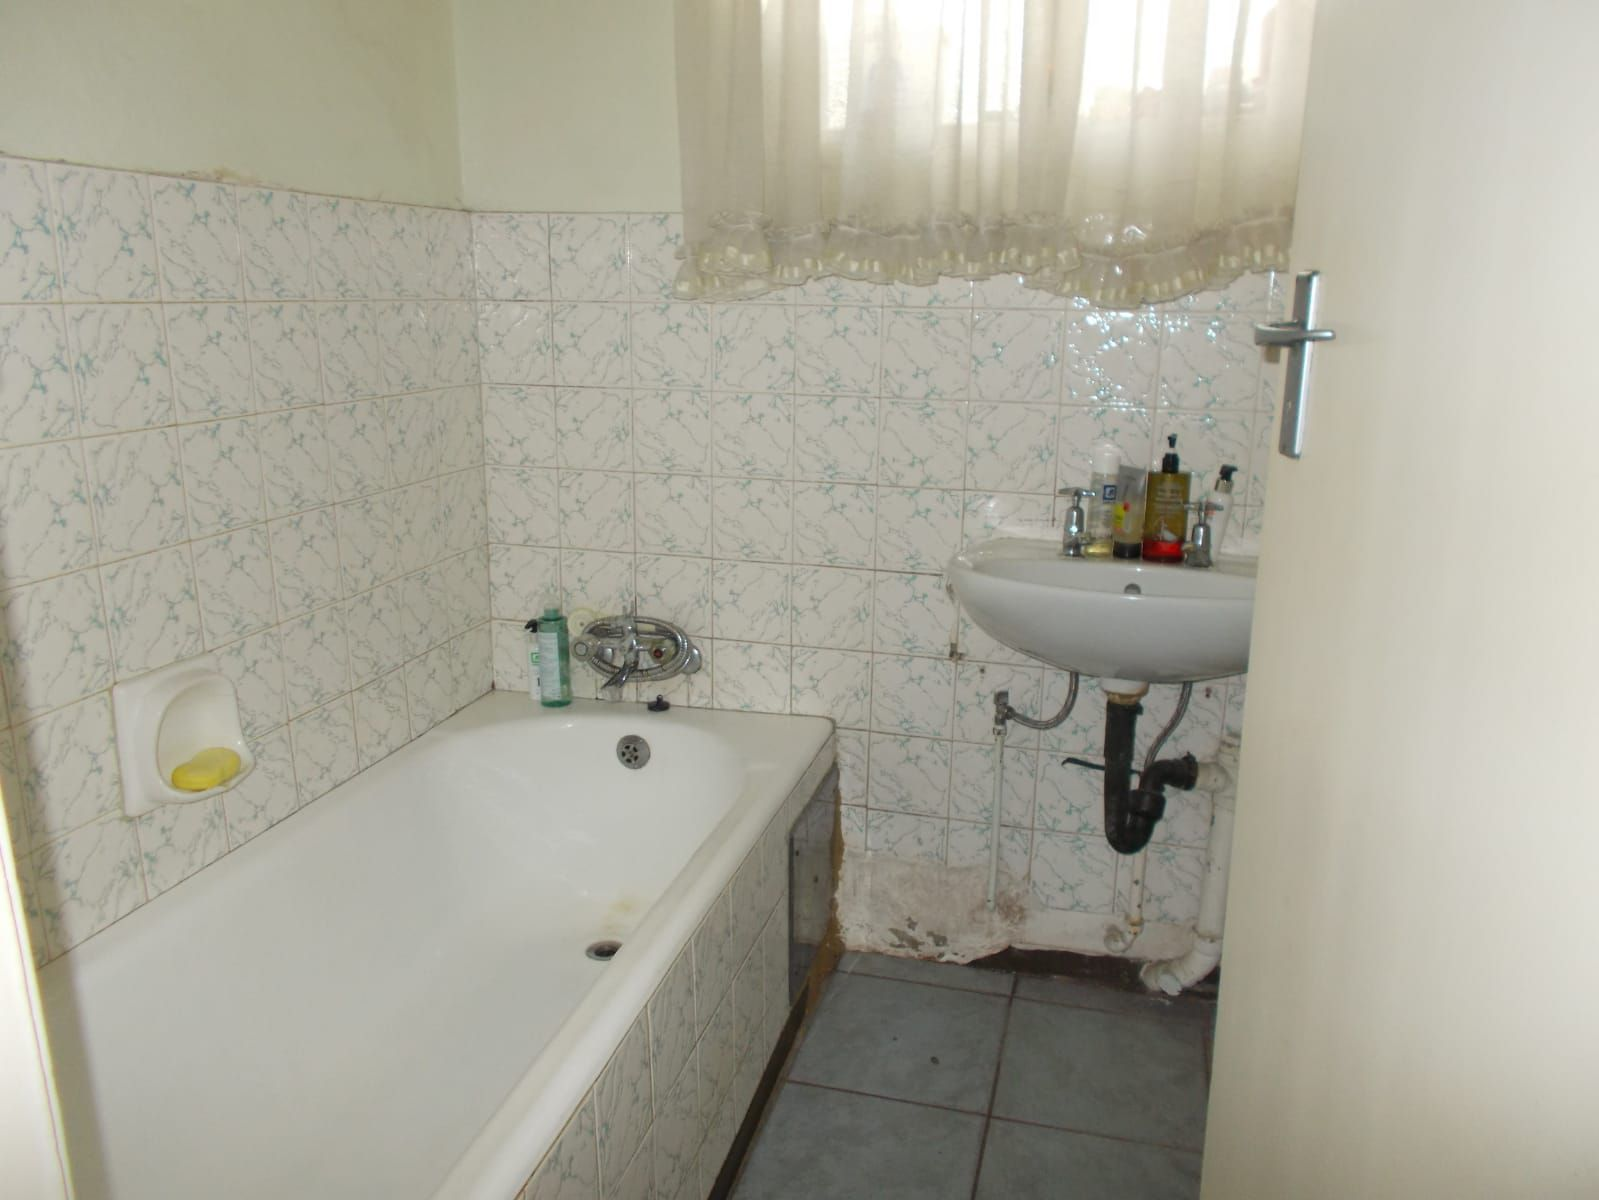 Apartment in Hillbrow - WhatsApp Image 2021-01-12 at 13.04.00 (5).jpeg